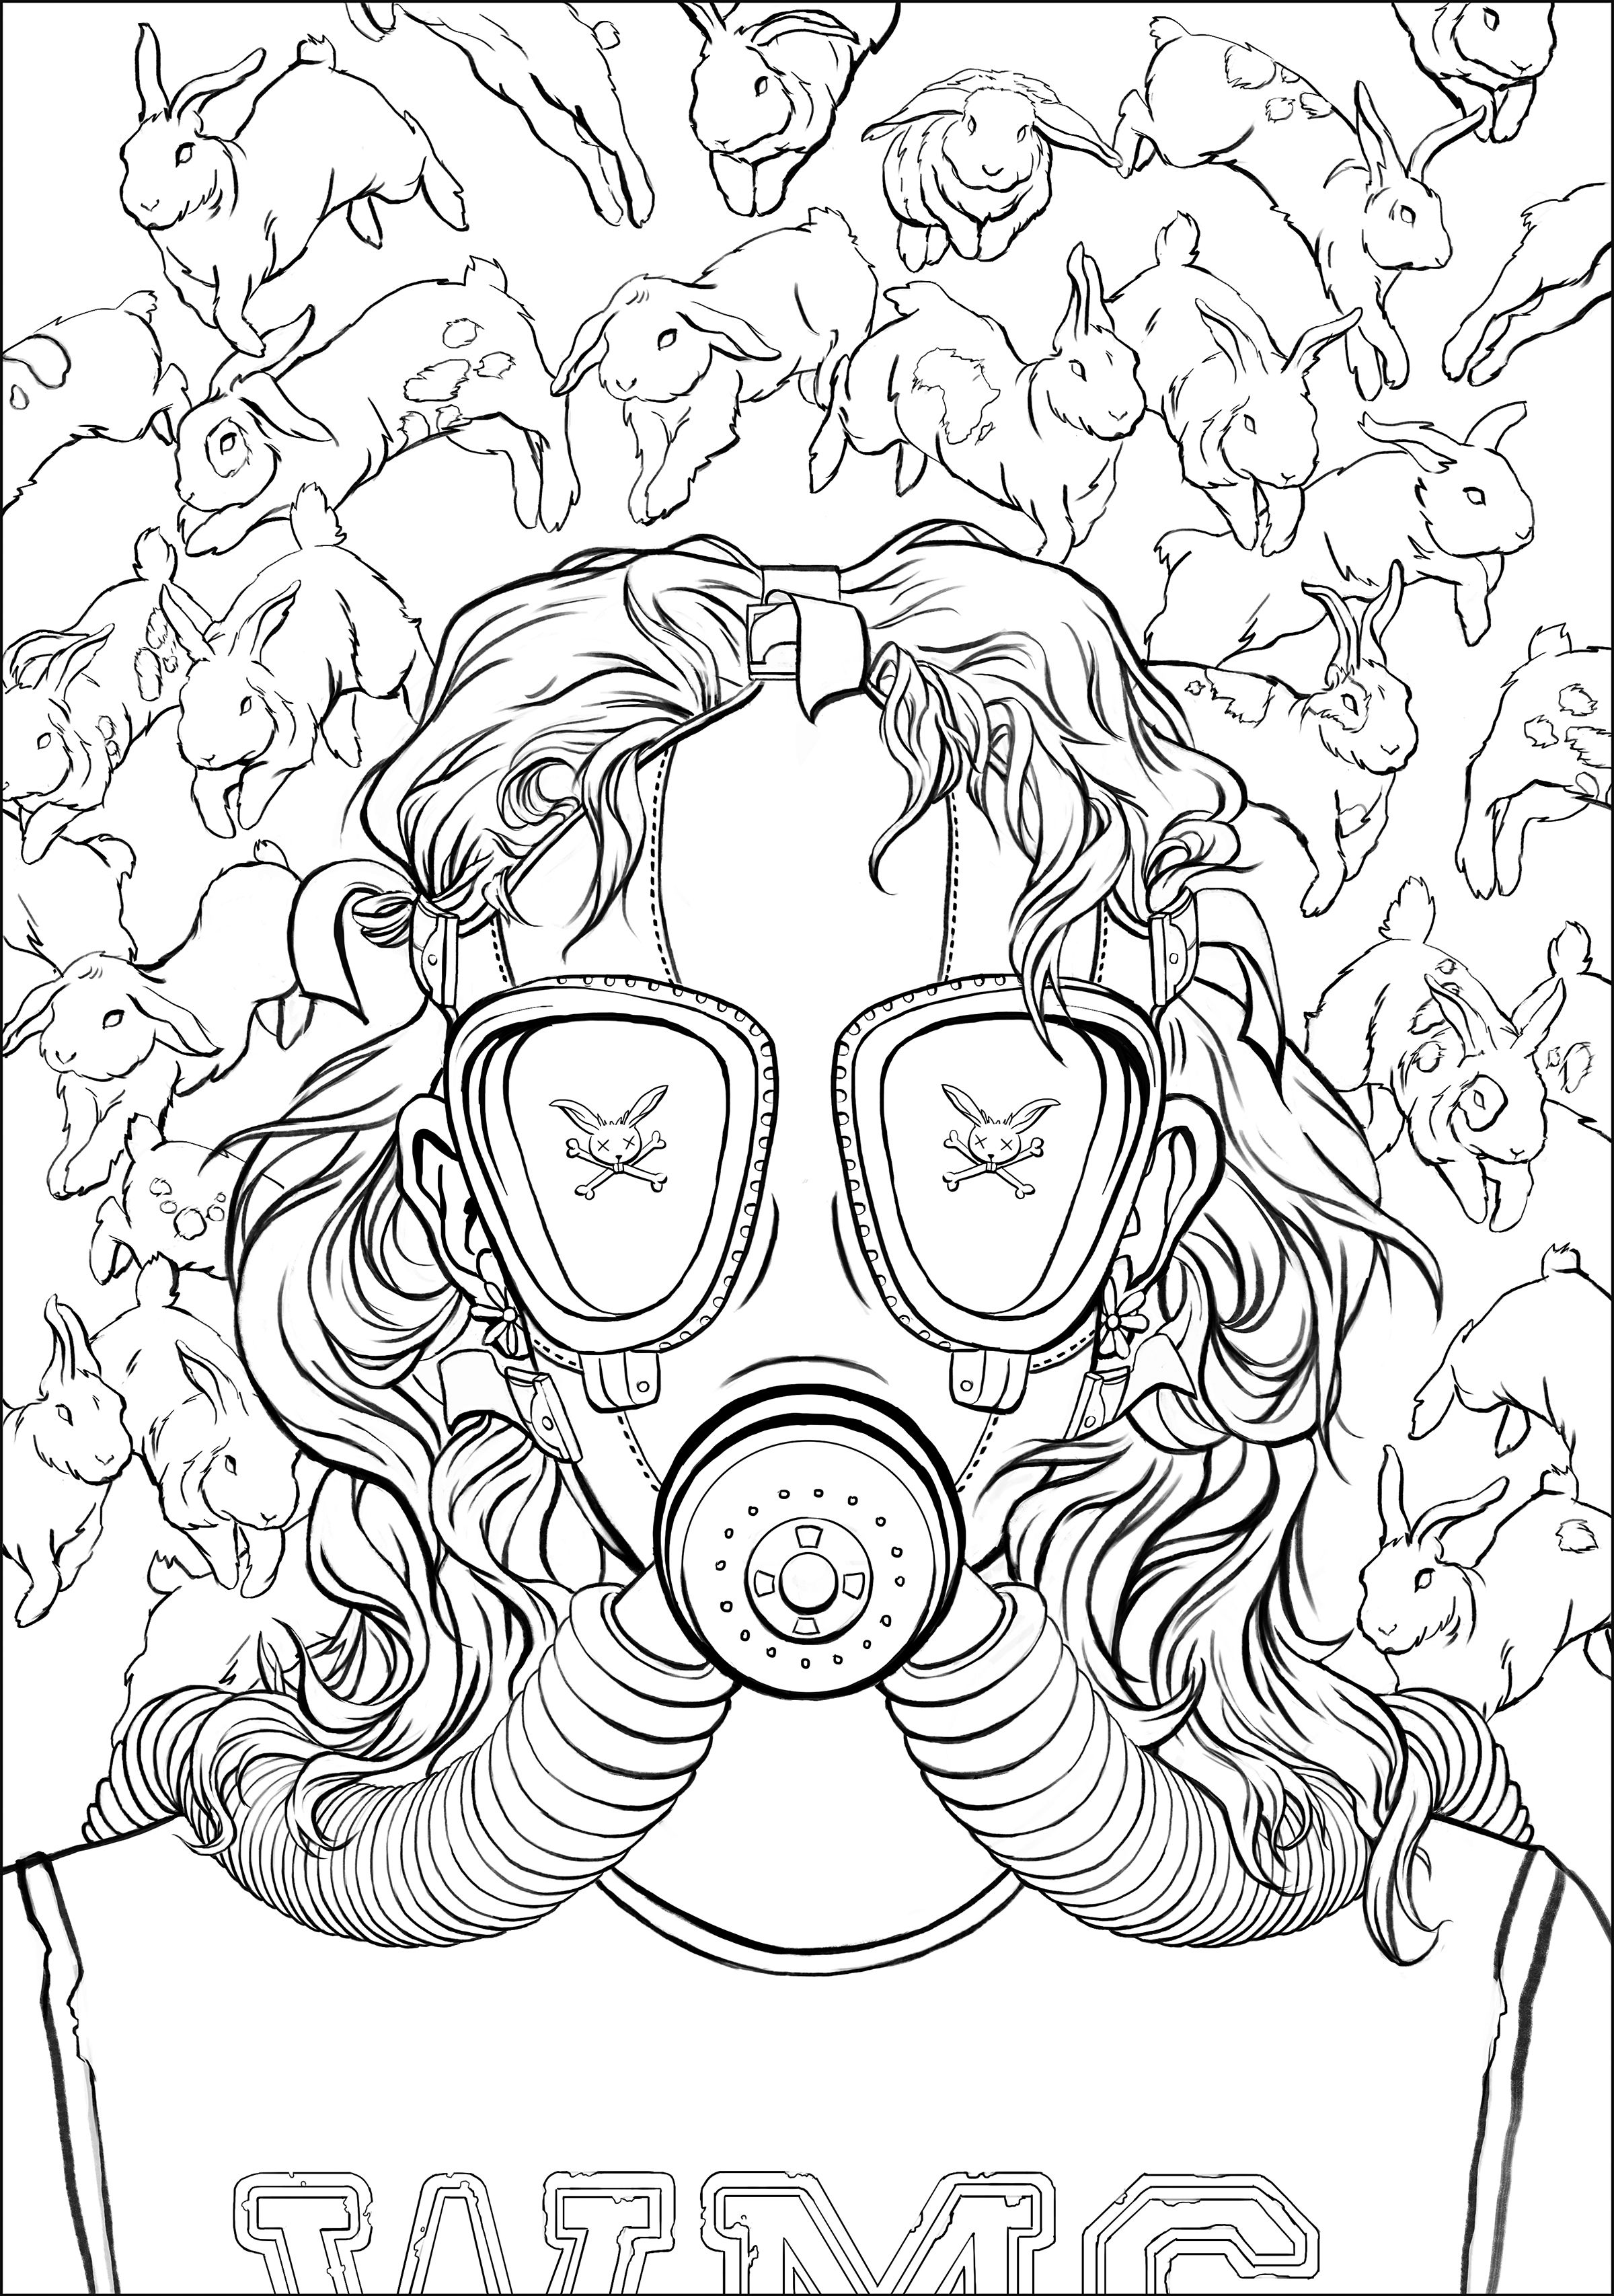 Why The Author Of Fight Club Is Writing A Coloring Book For Adults